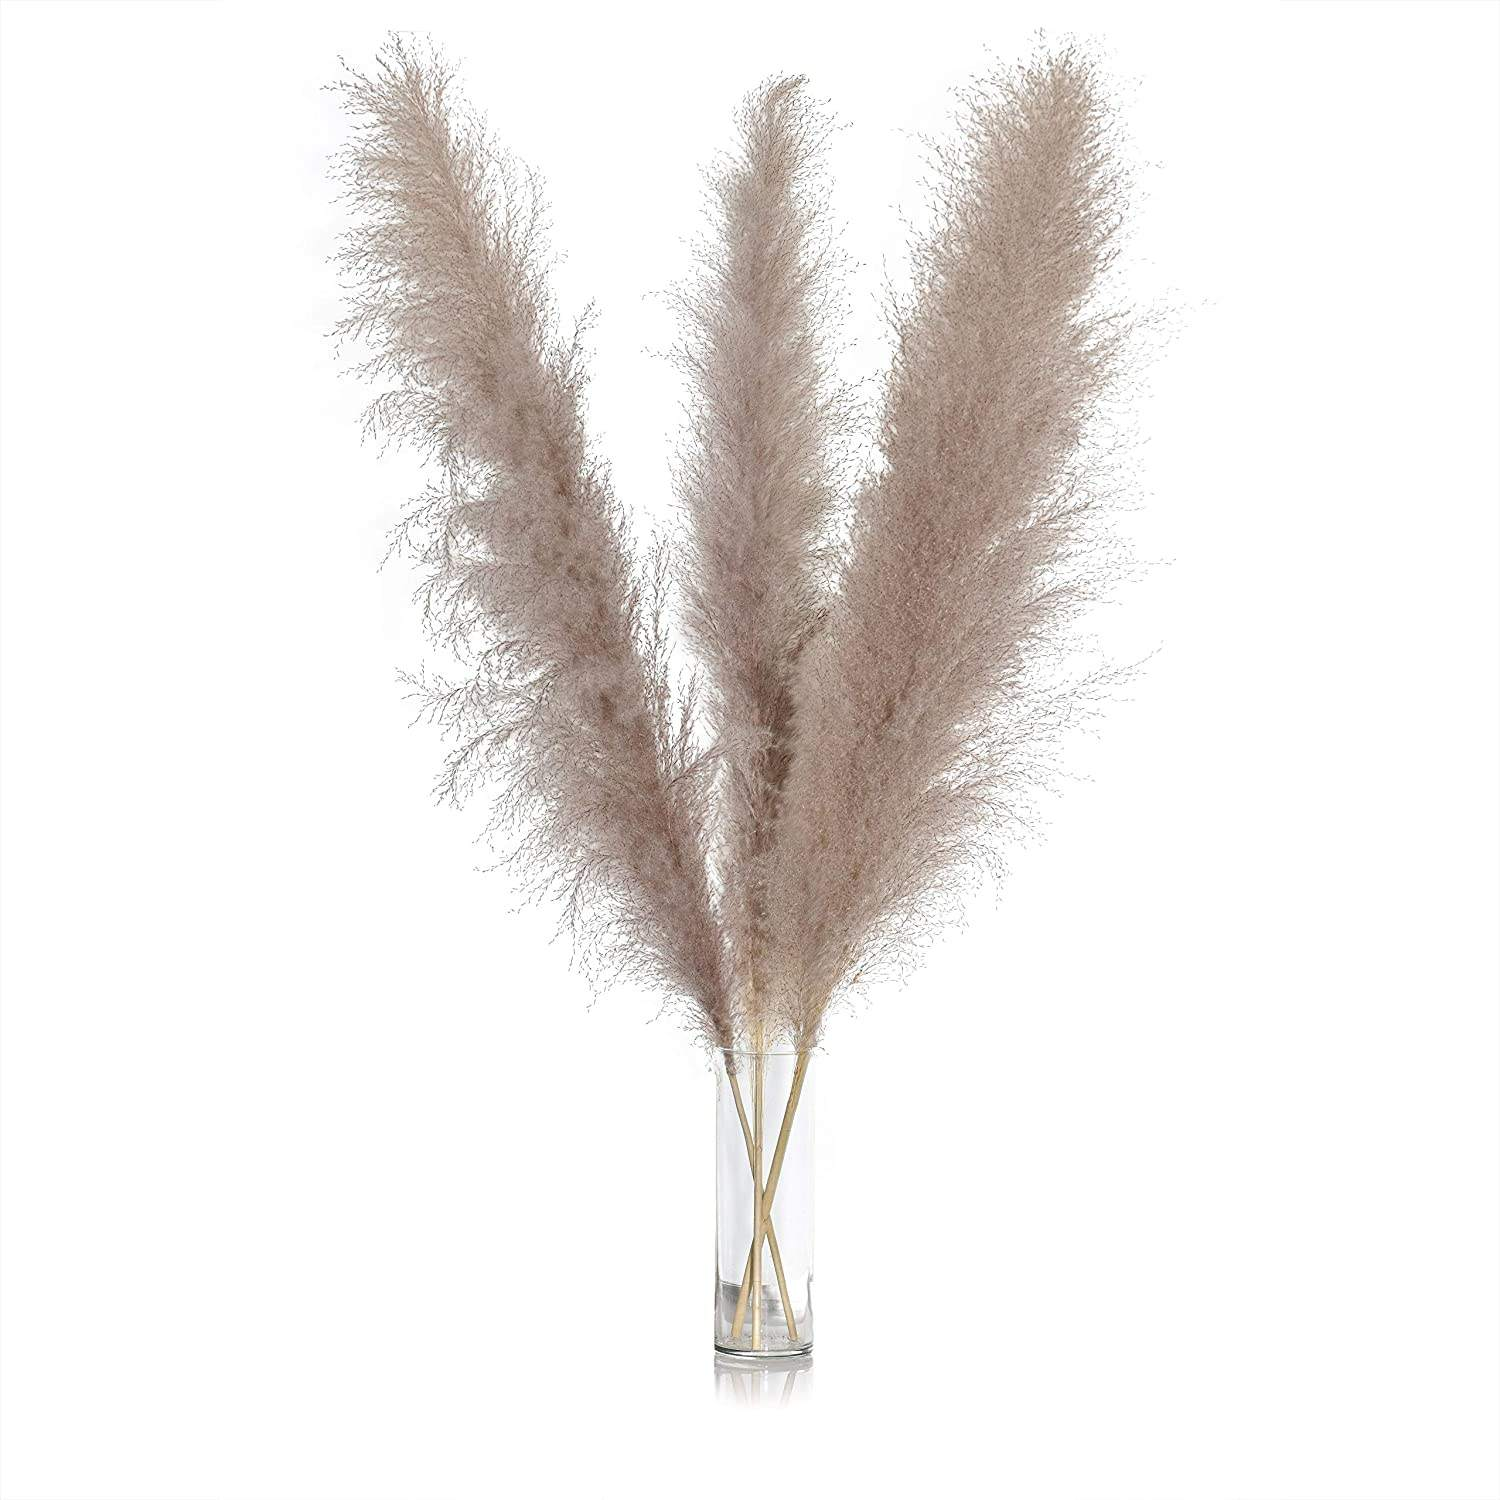 Wholesale Natural Dried Dry Reed Straw Large Decorative Gray Pampas Grass For Wedding